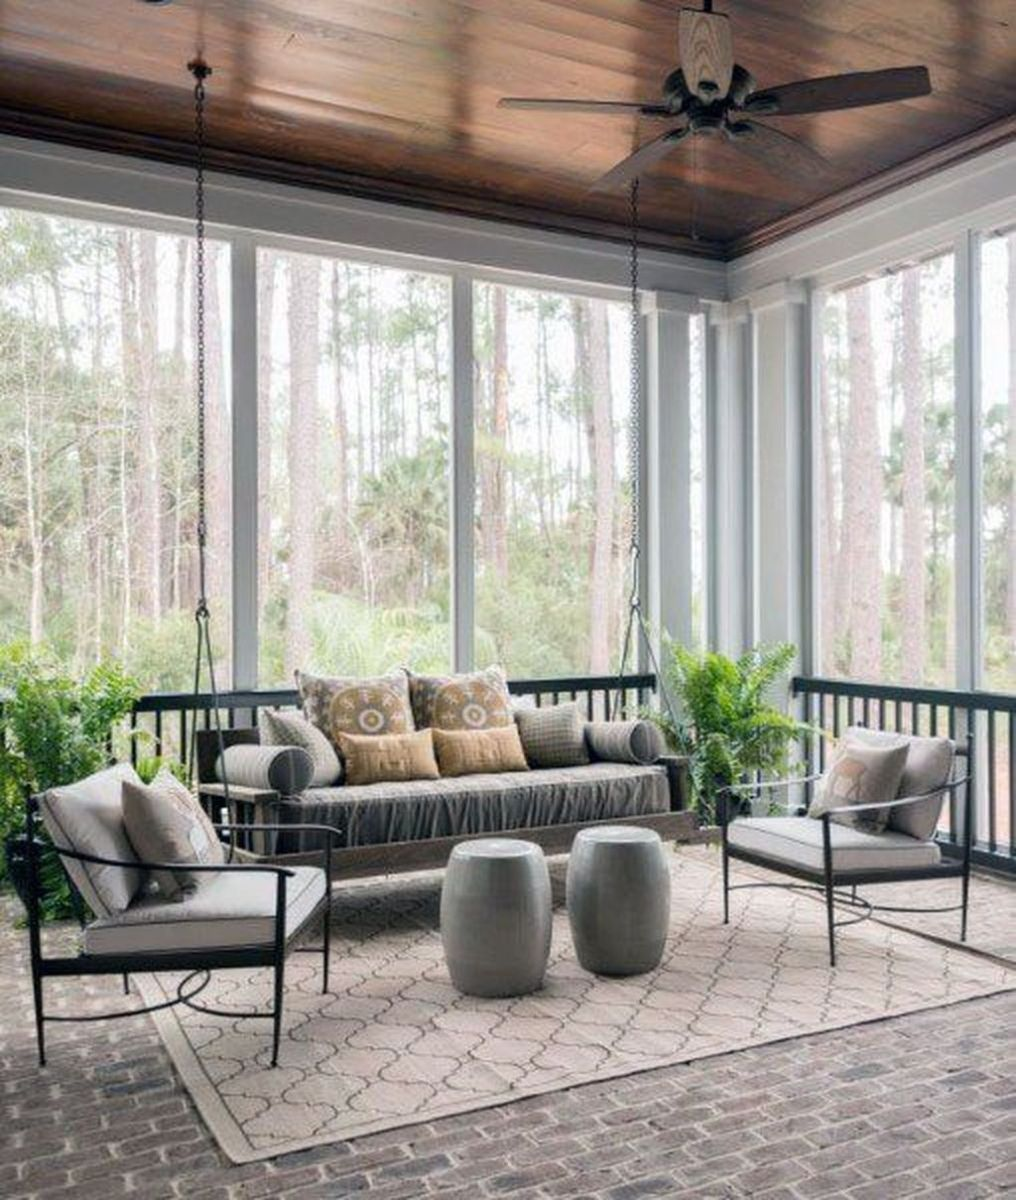 Gorgeous Modern Sunroom Design Ideas To Relax In The Summer 18